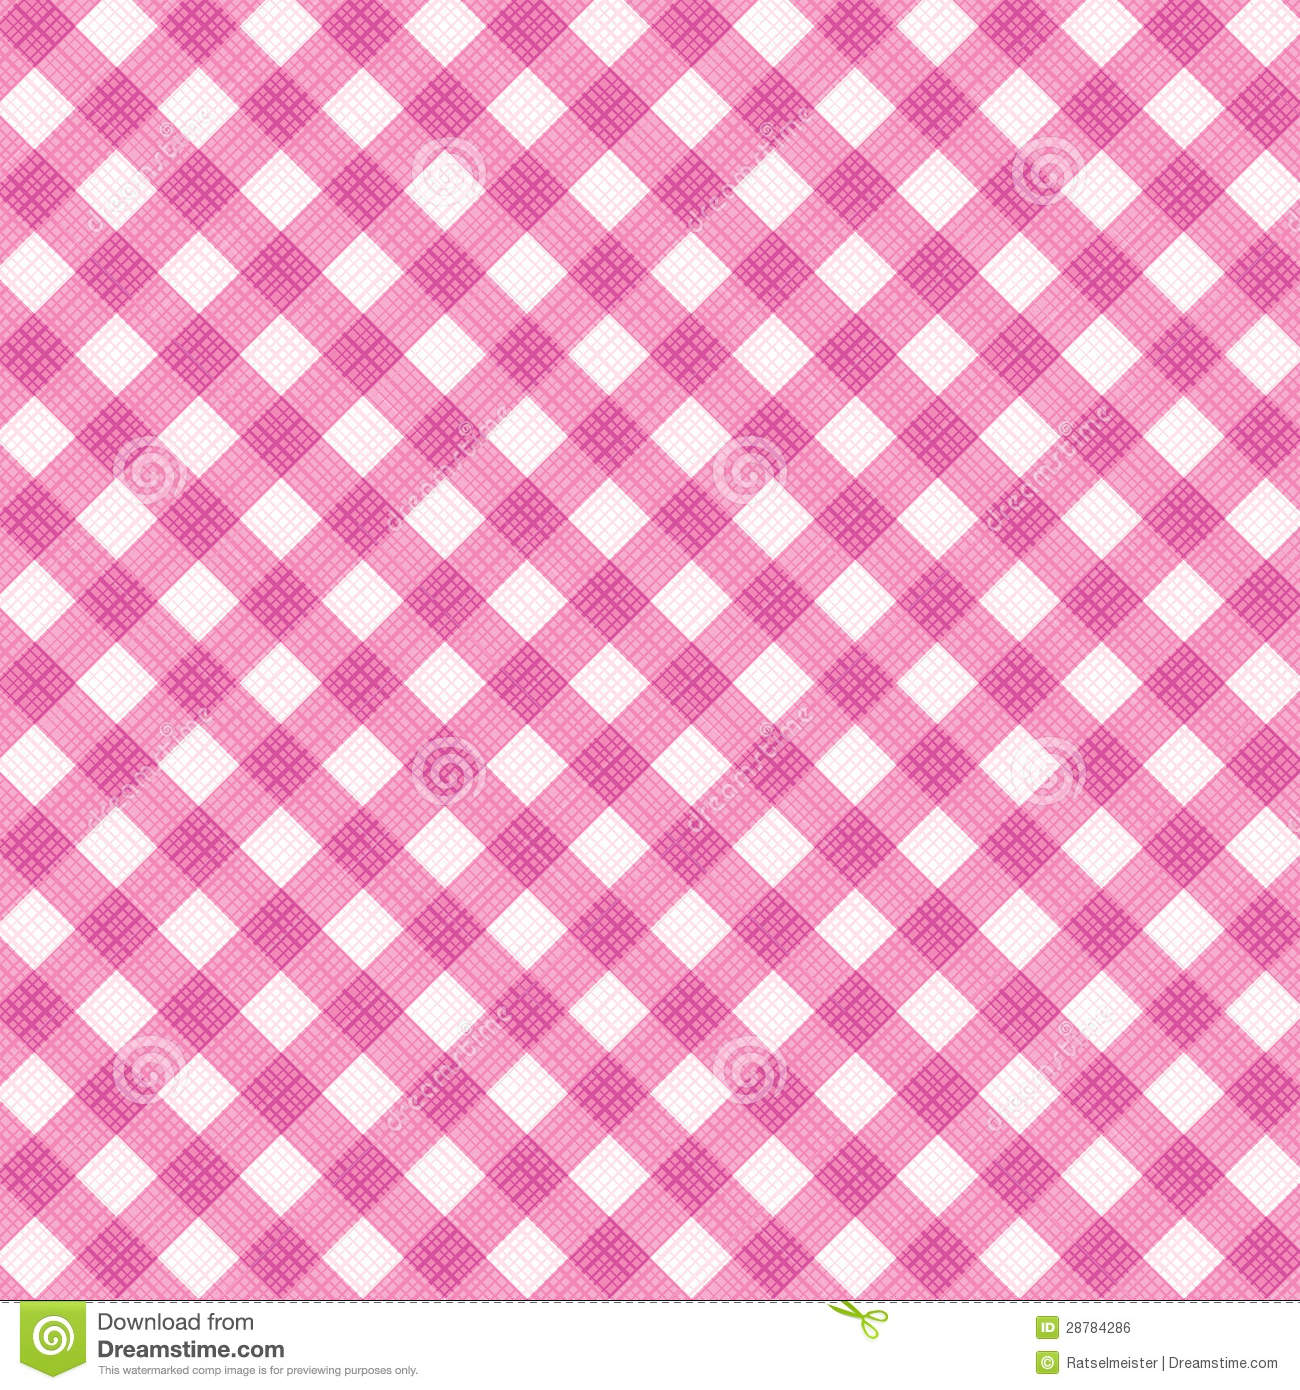 Free clipart images of gingham patterns.